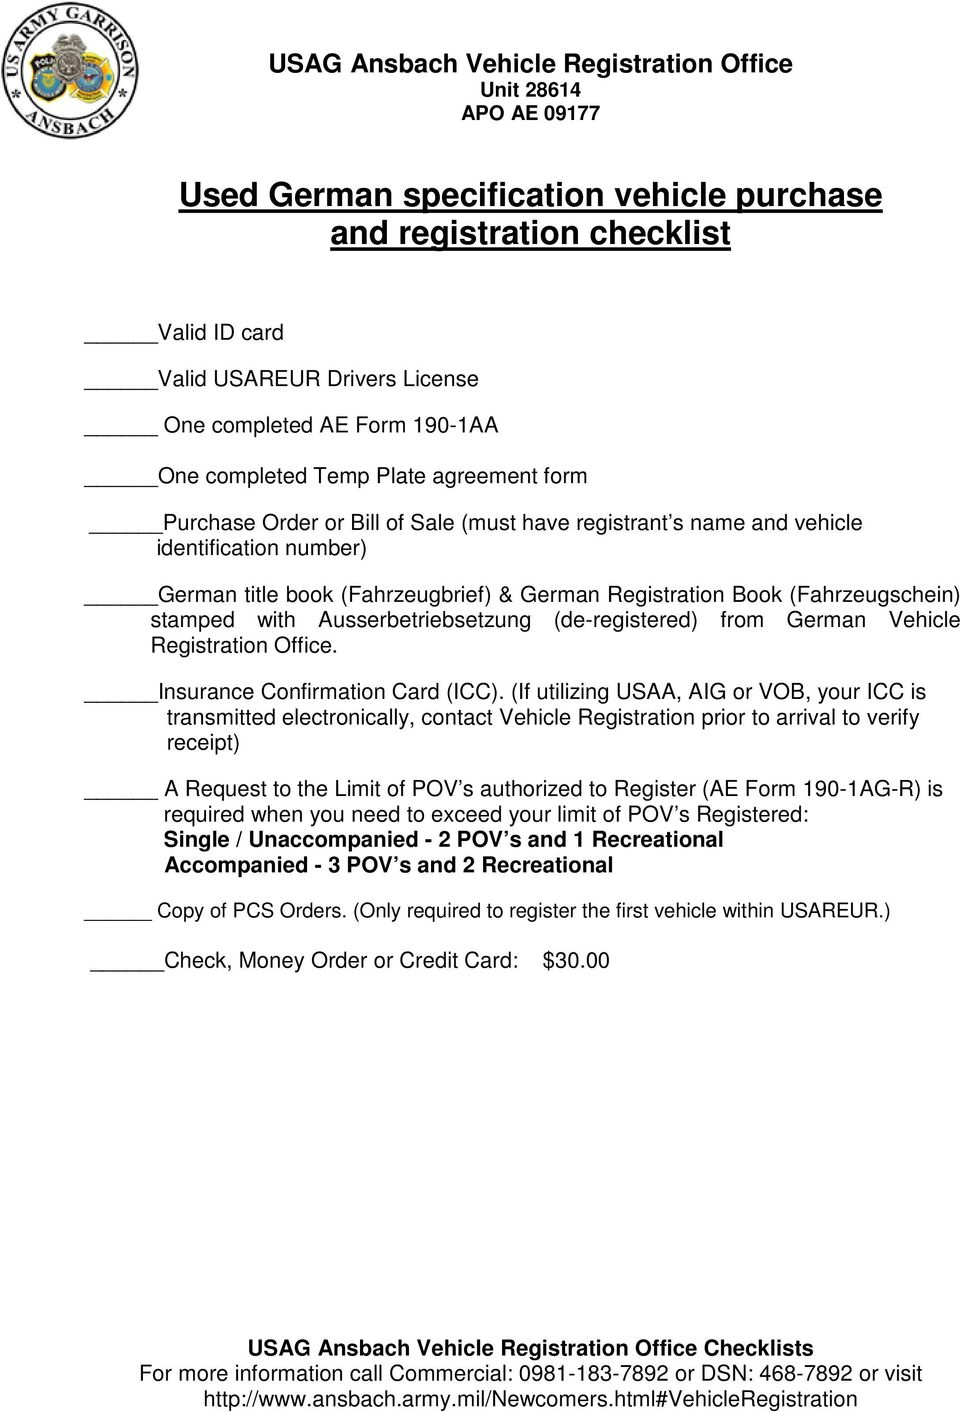 New U S  specifications vehicle purchase and registration